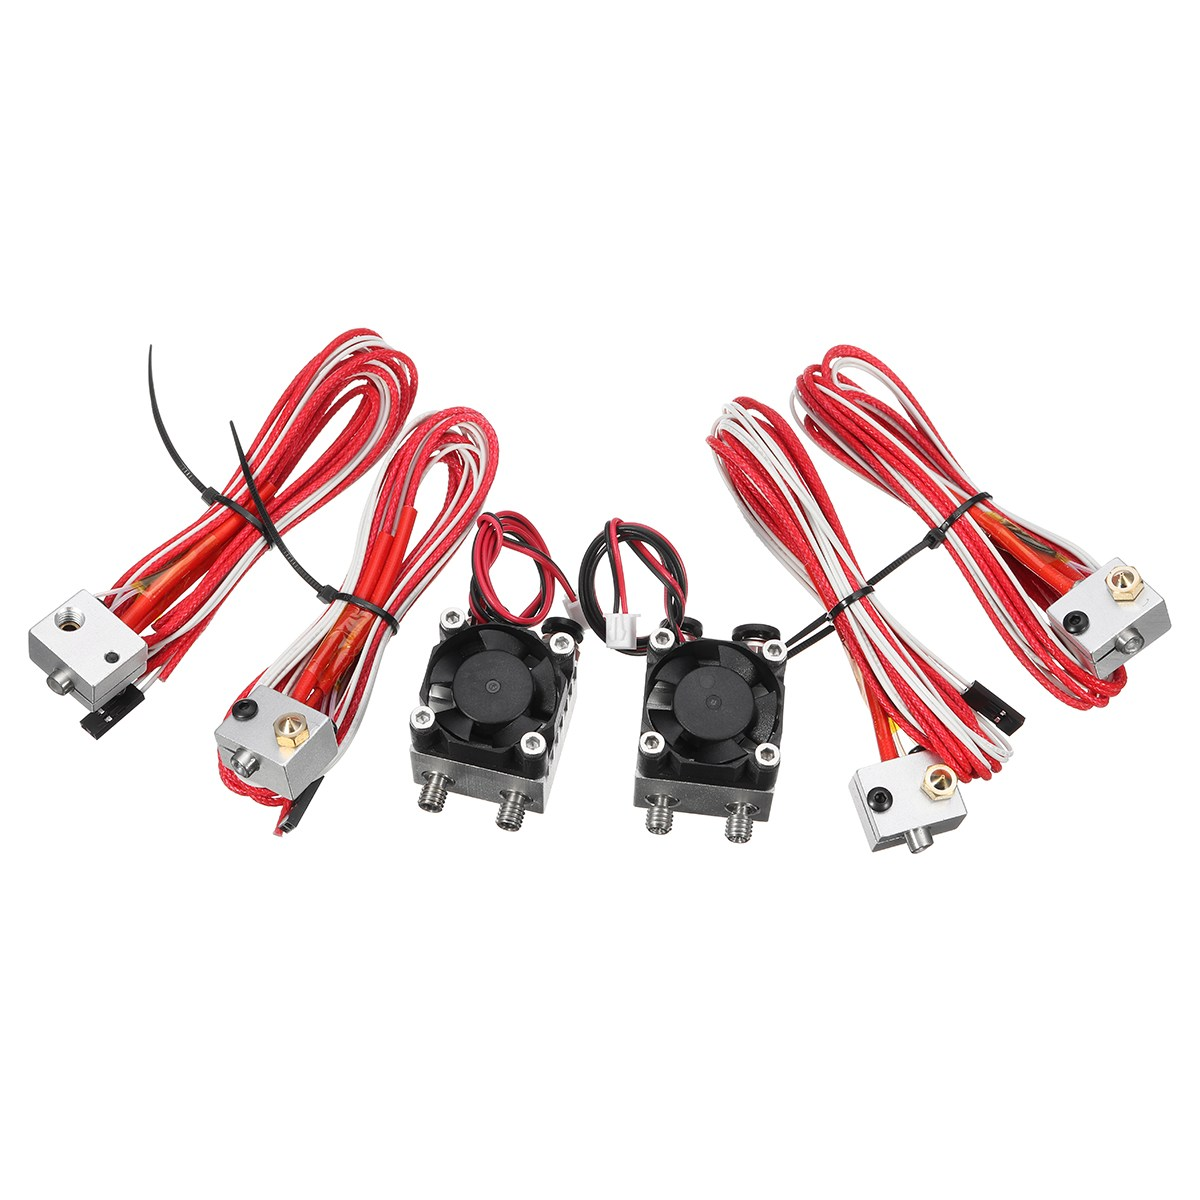 3D Printer Extruder Double Nozzle Kits 1.75mm 3.0mm Multi-Extrusion mm Dual Head Print 3D Printer Extruder